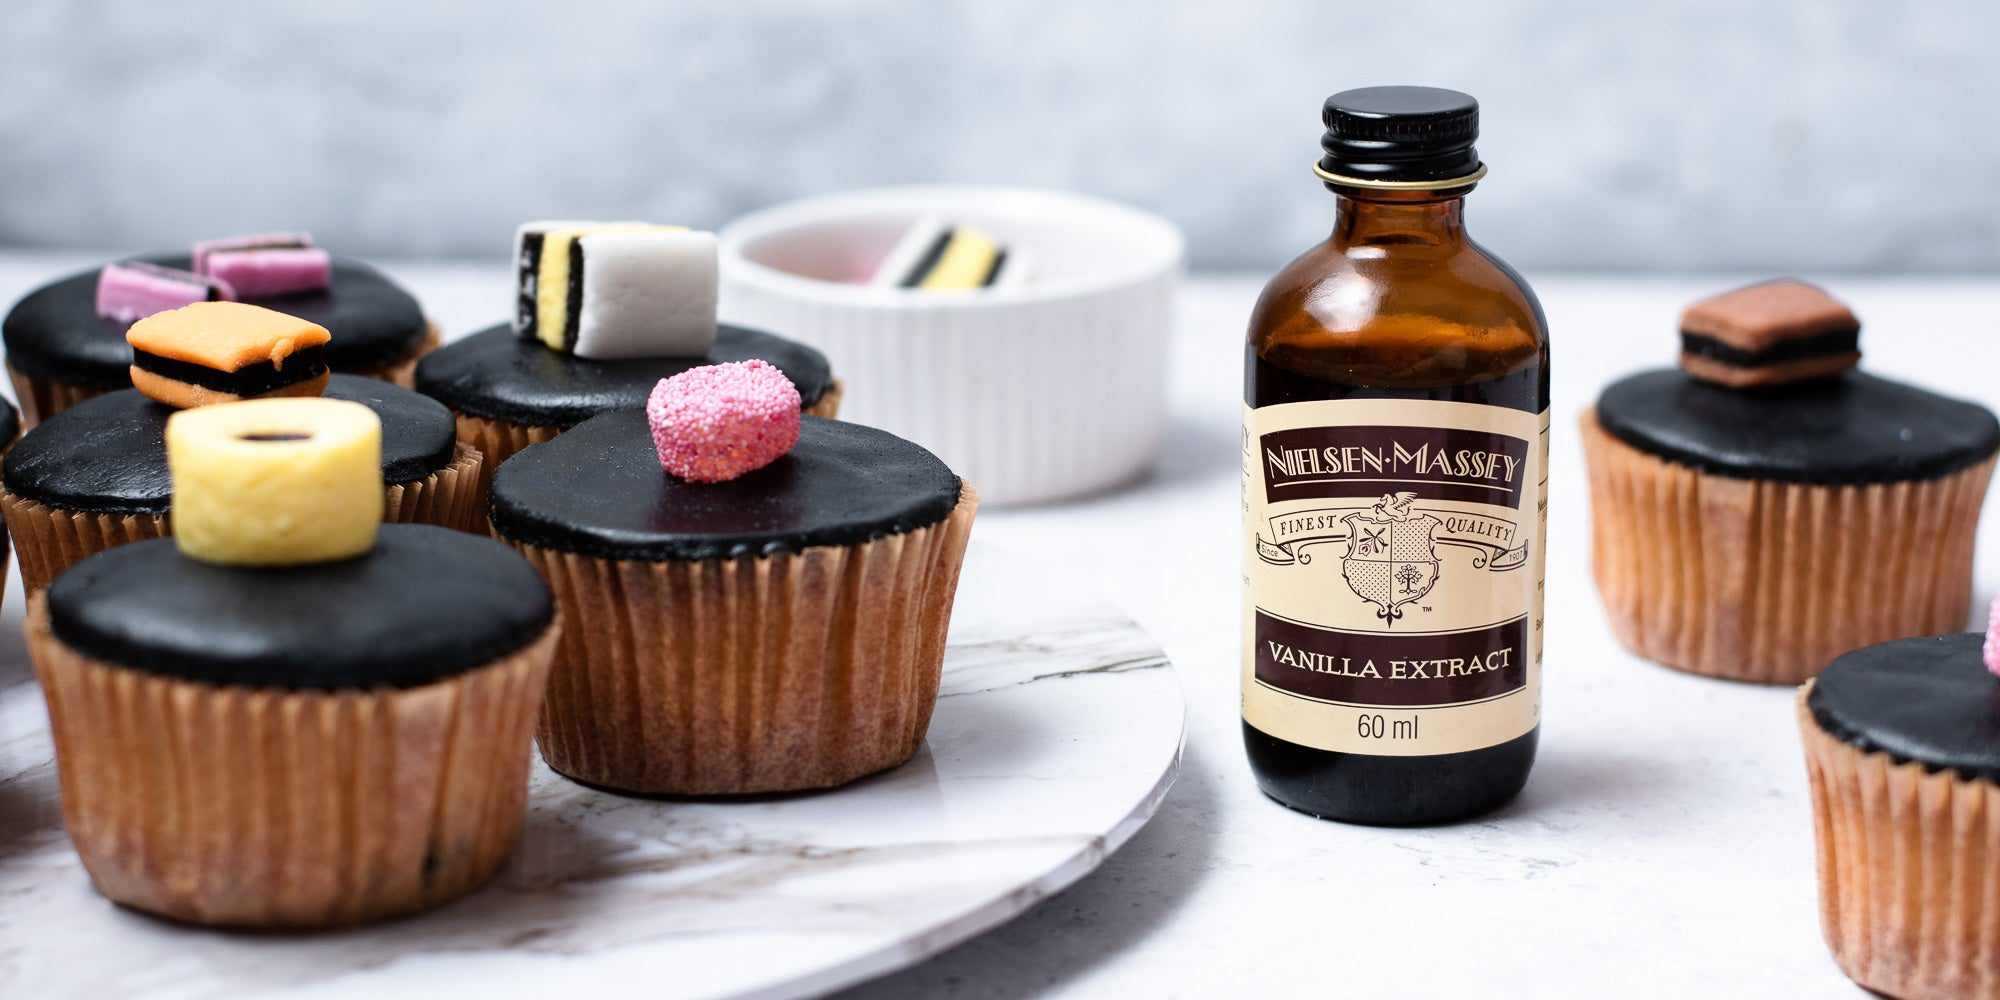 Cupcakes in brown cases, black fondant, topped with liquorice allsorts. Bowl of sweets in background. Vanilla bottle